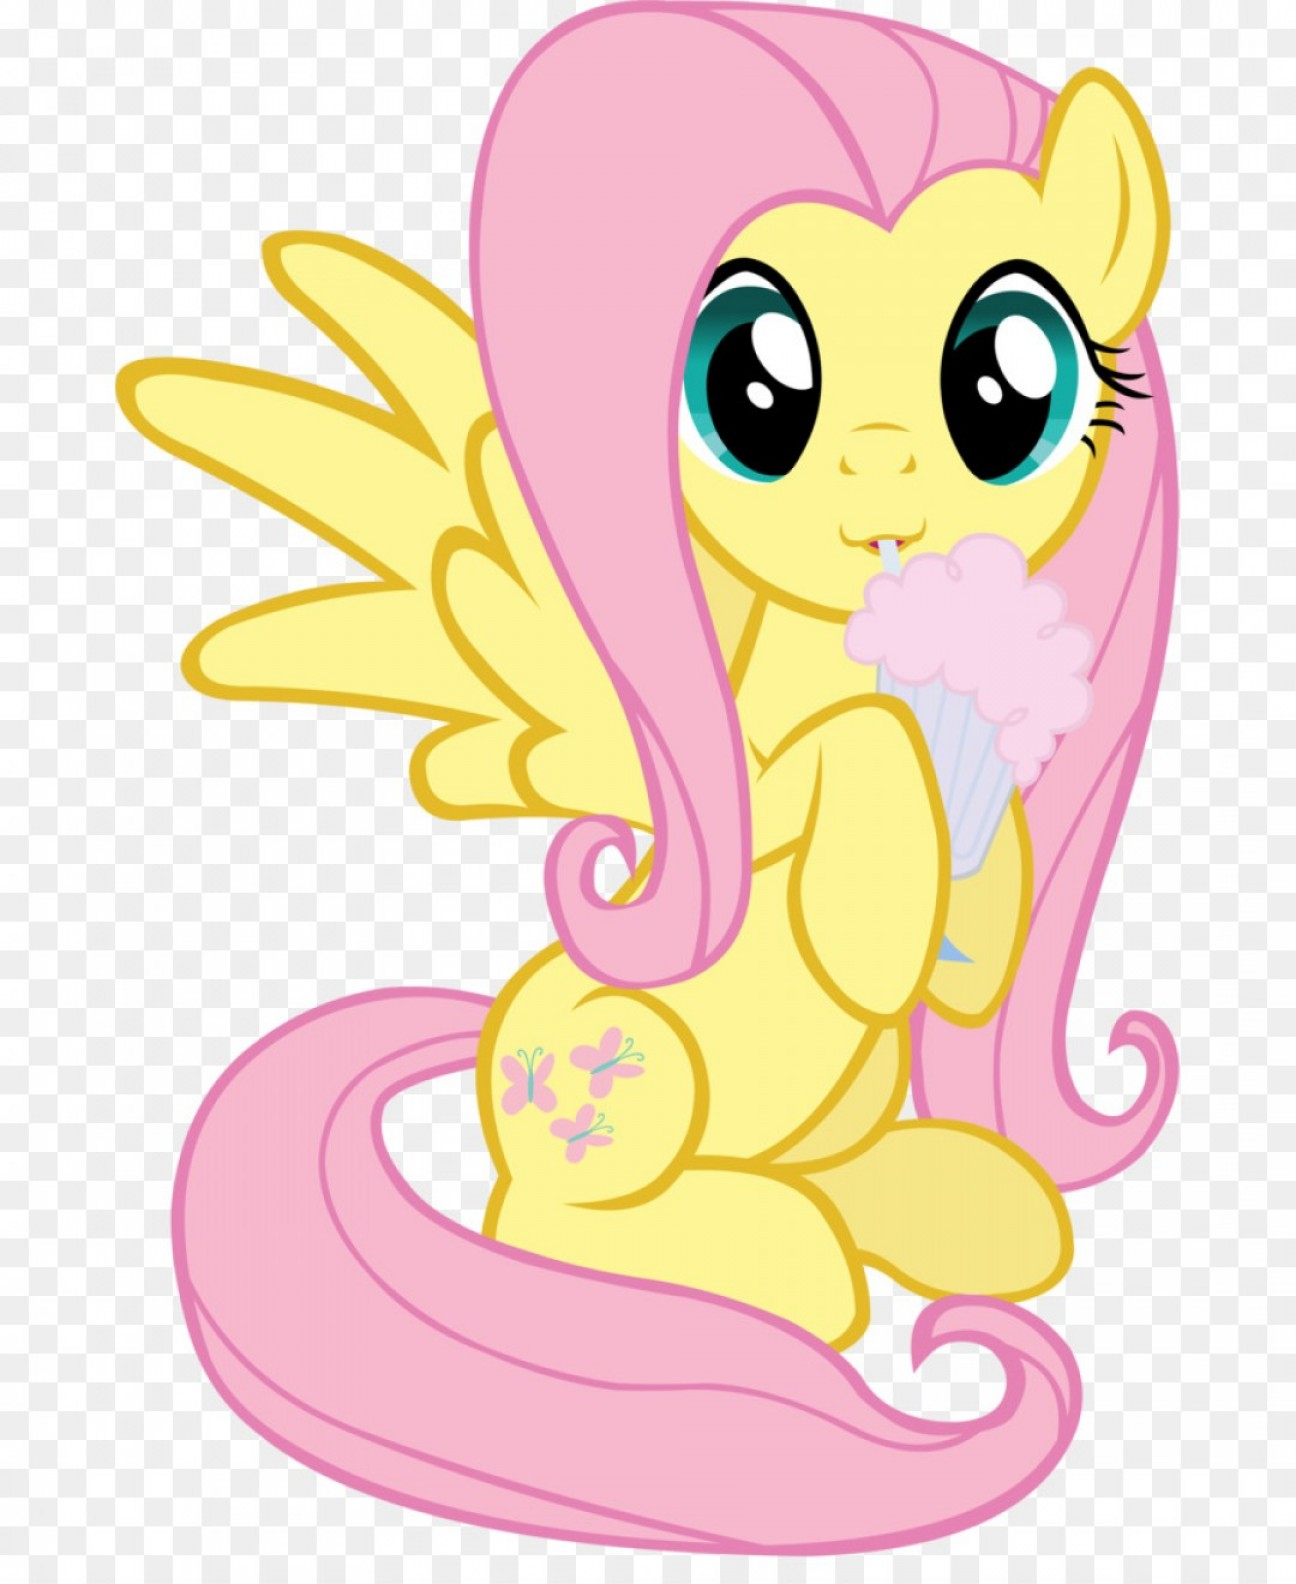 Derpy Hooves Vector: Png Fluttershy Pinkie Pie Pony Youtube Derpy Hooves Dr